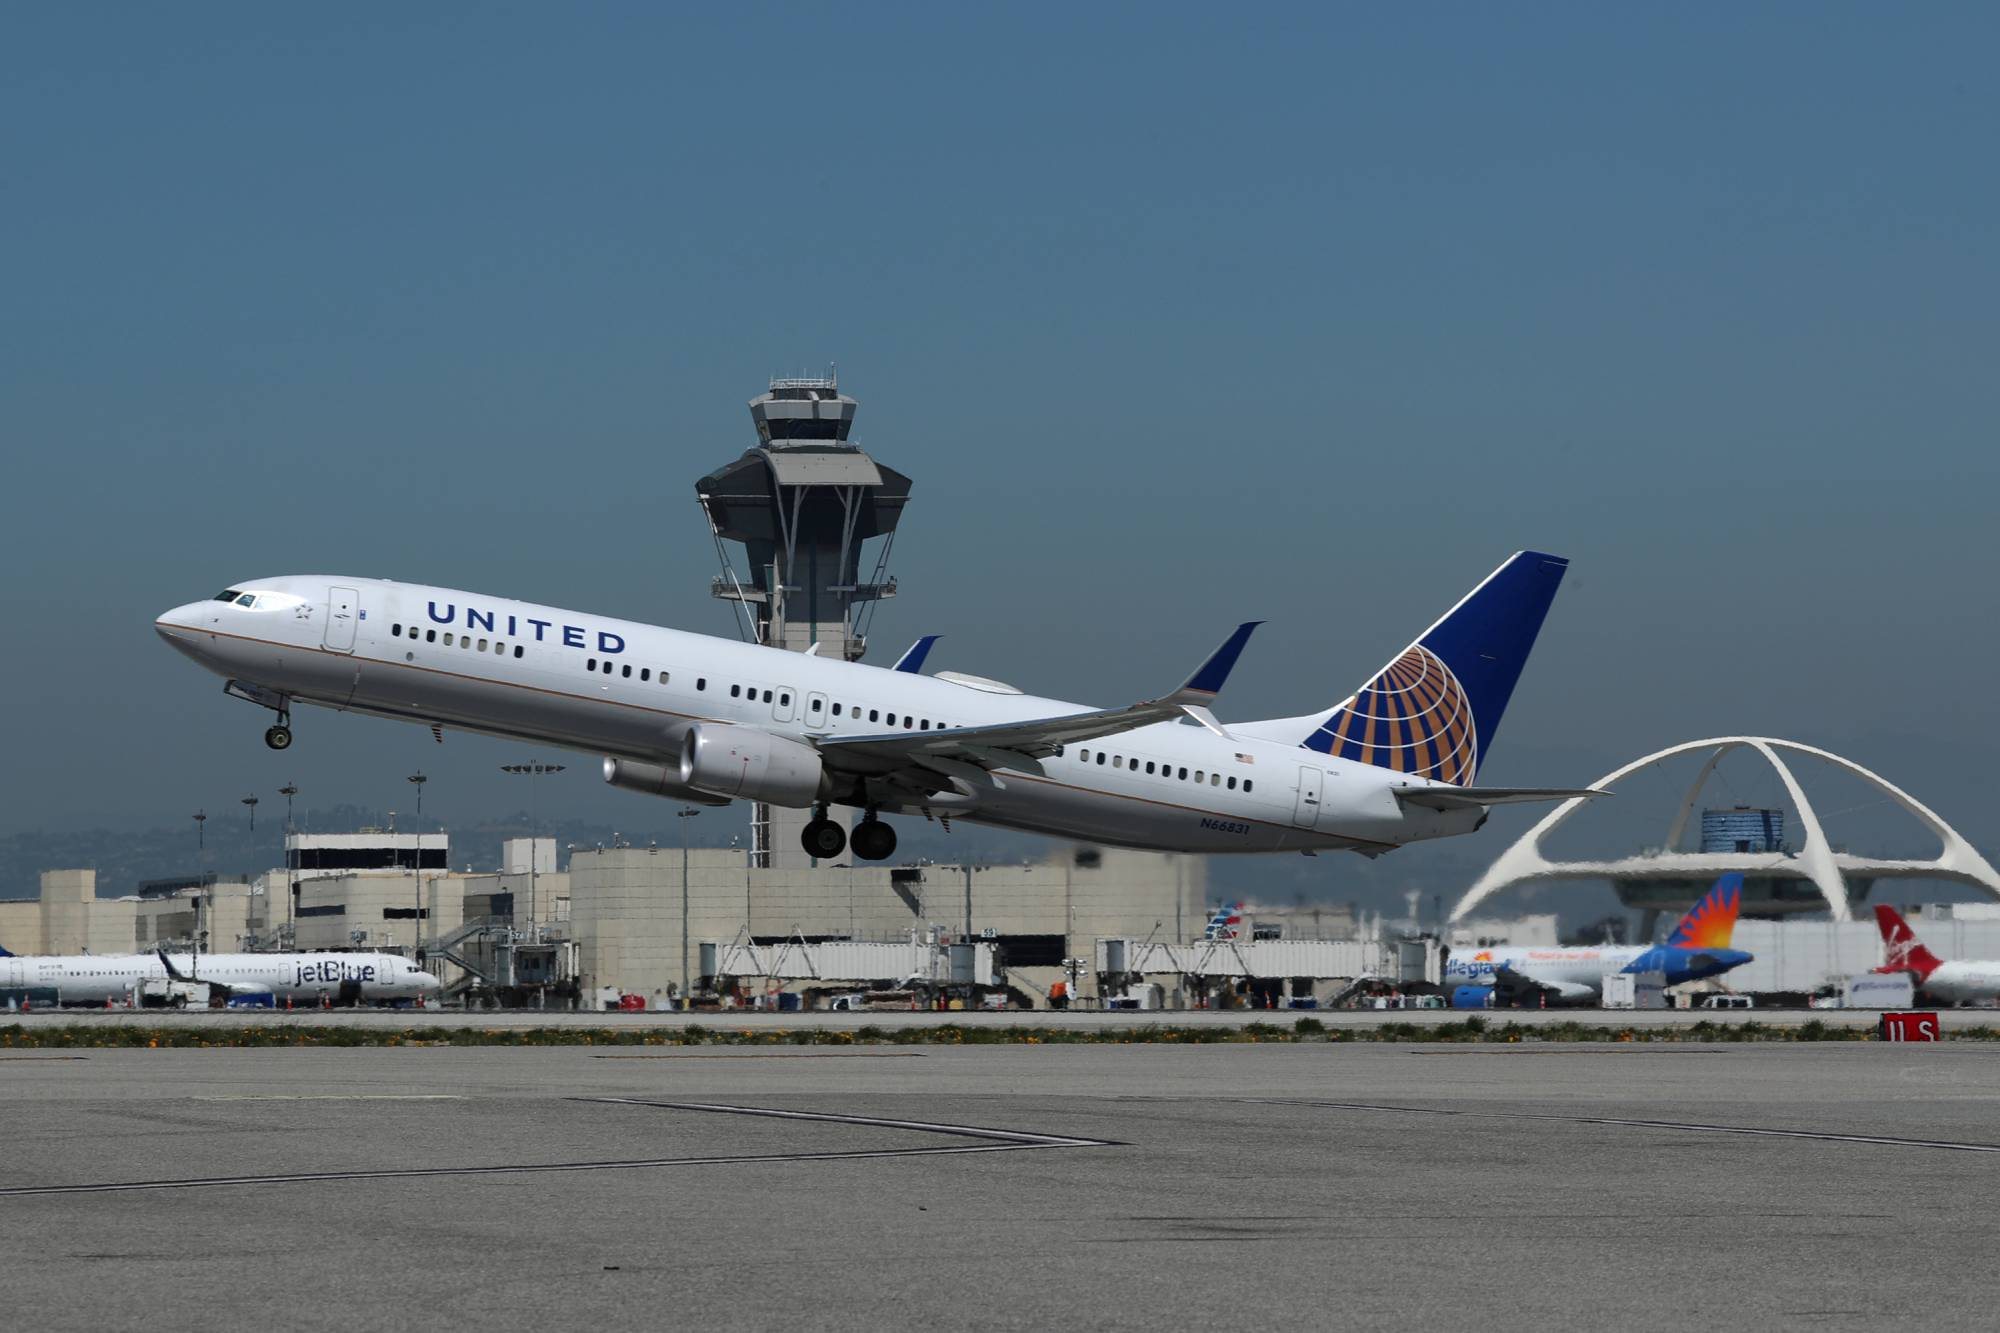 United Airlines Boeing 737 plane takes off from Los Angeles International airport